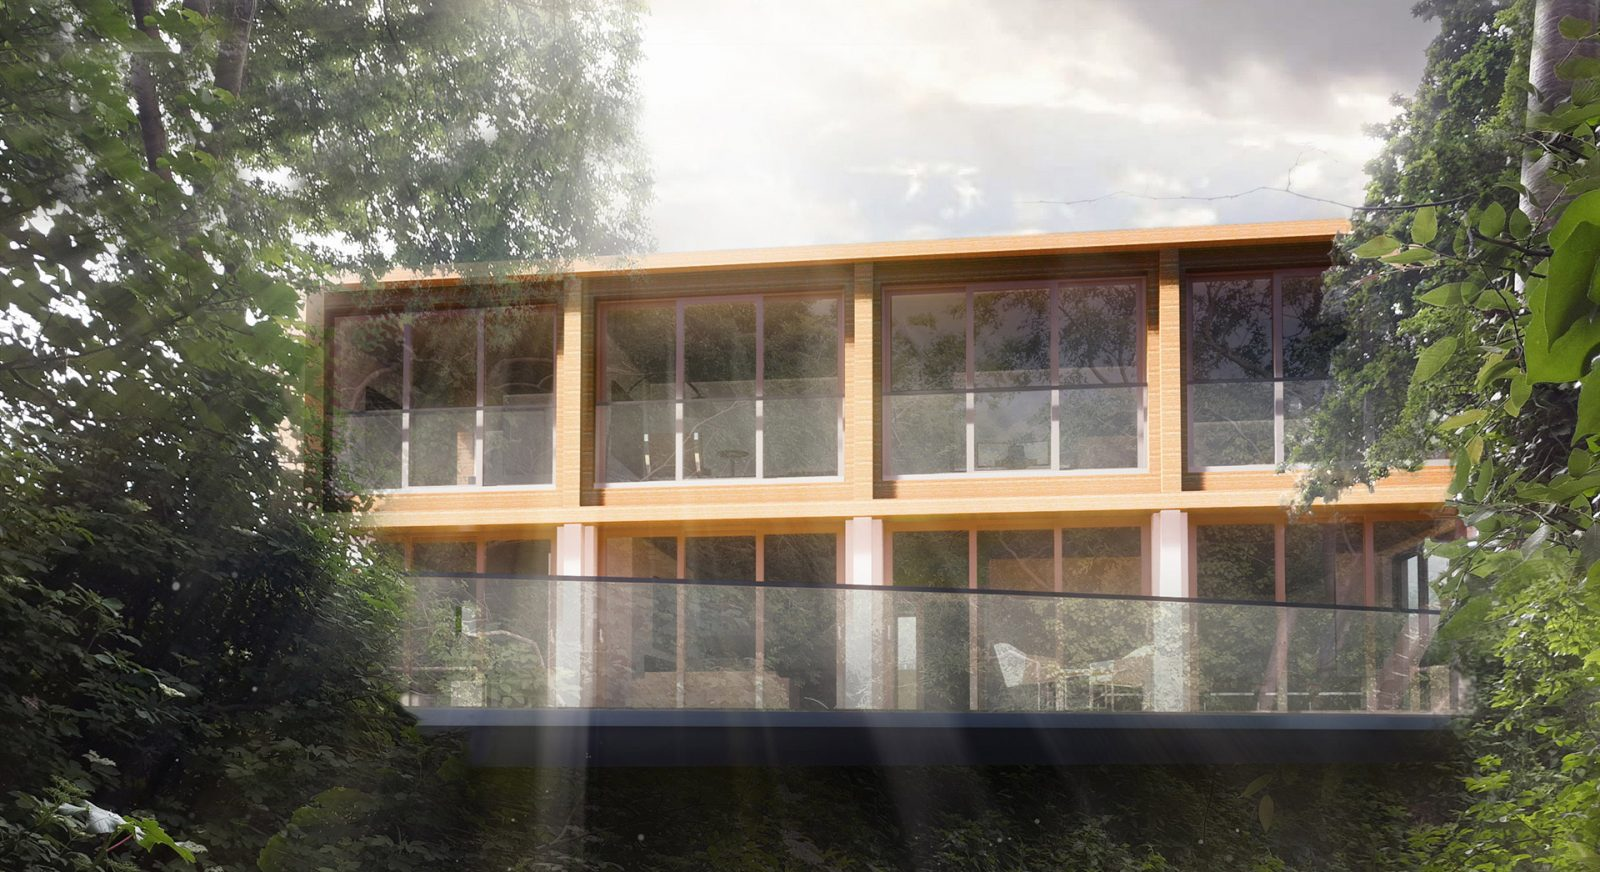 FT le coin st helier modern house architecture cardiff architects jersey architects11